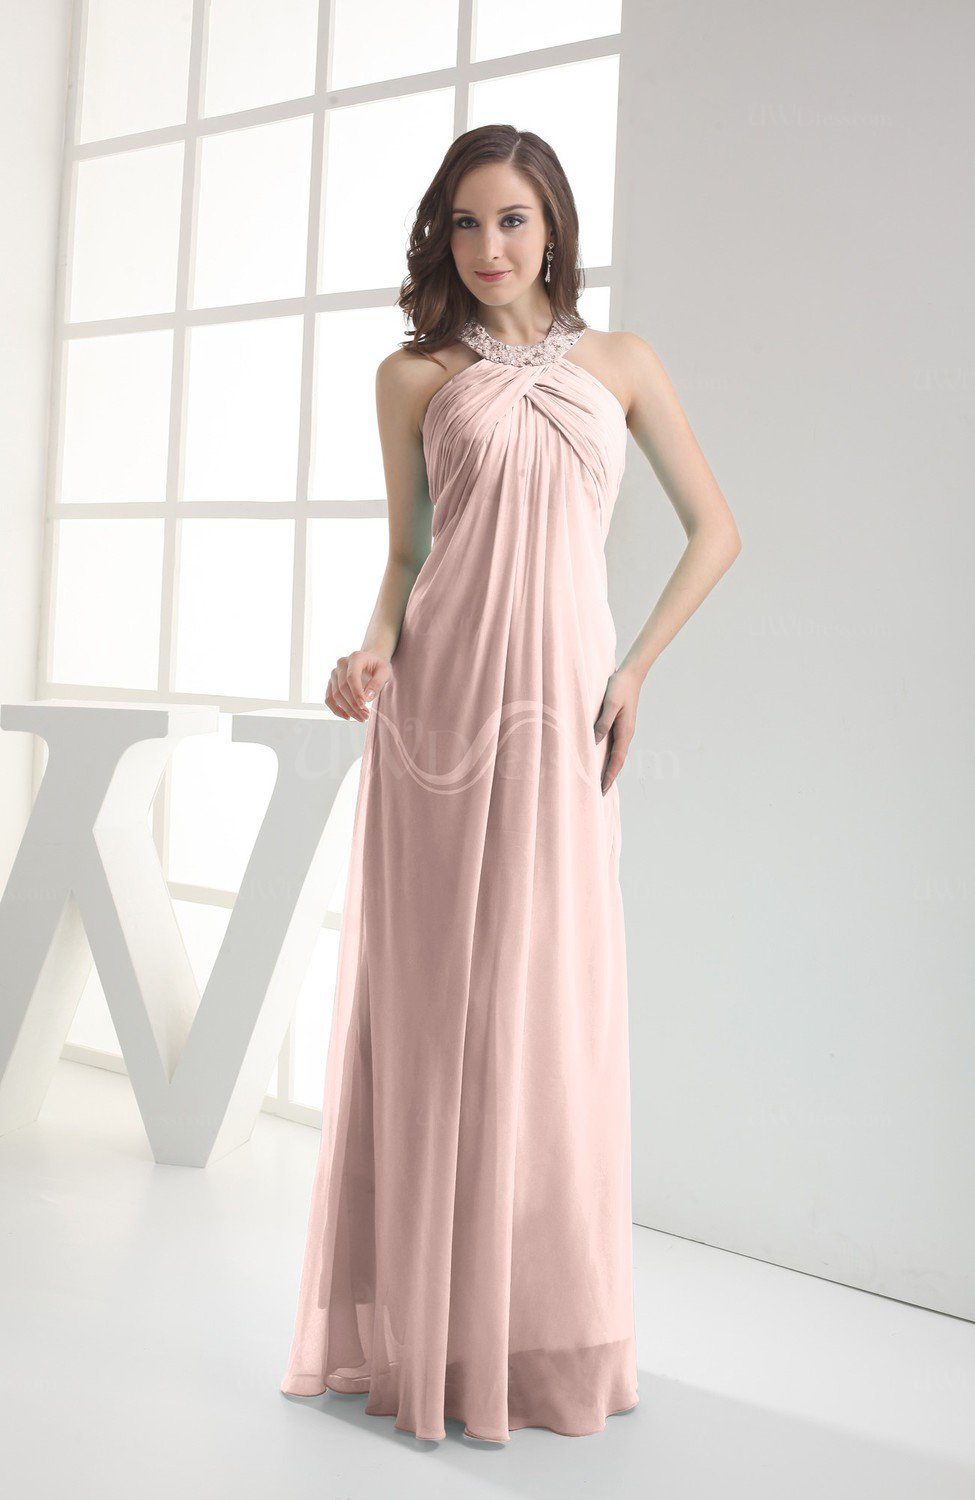 7a0f001cc7235 Dusty Rose Modest Sleeveless Backless Chiffon Floor Length Ruching Bridesmaid  Dresses (Style D80113)